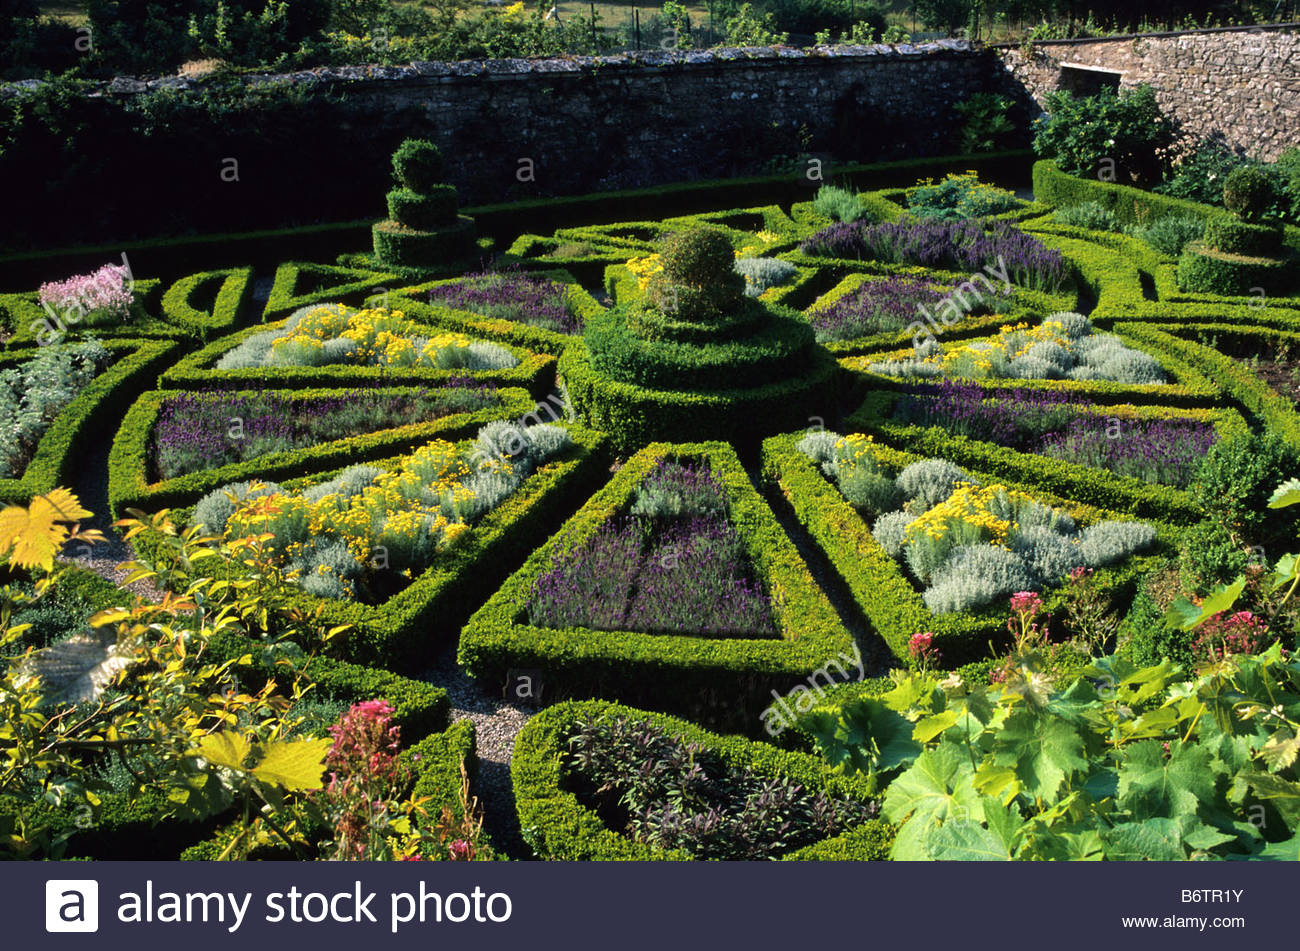 Bodysgallen north wales walled knot garden with herbs for Knot garden designs herbs